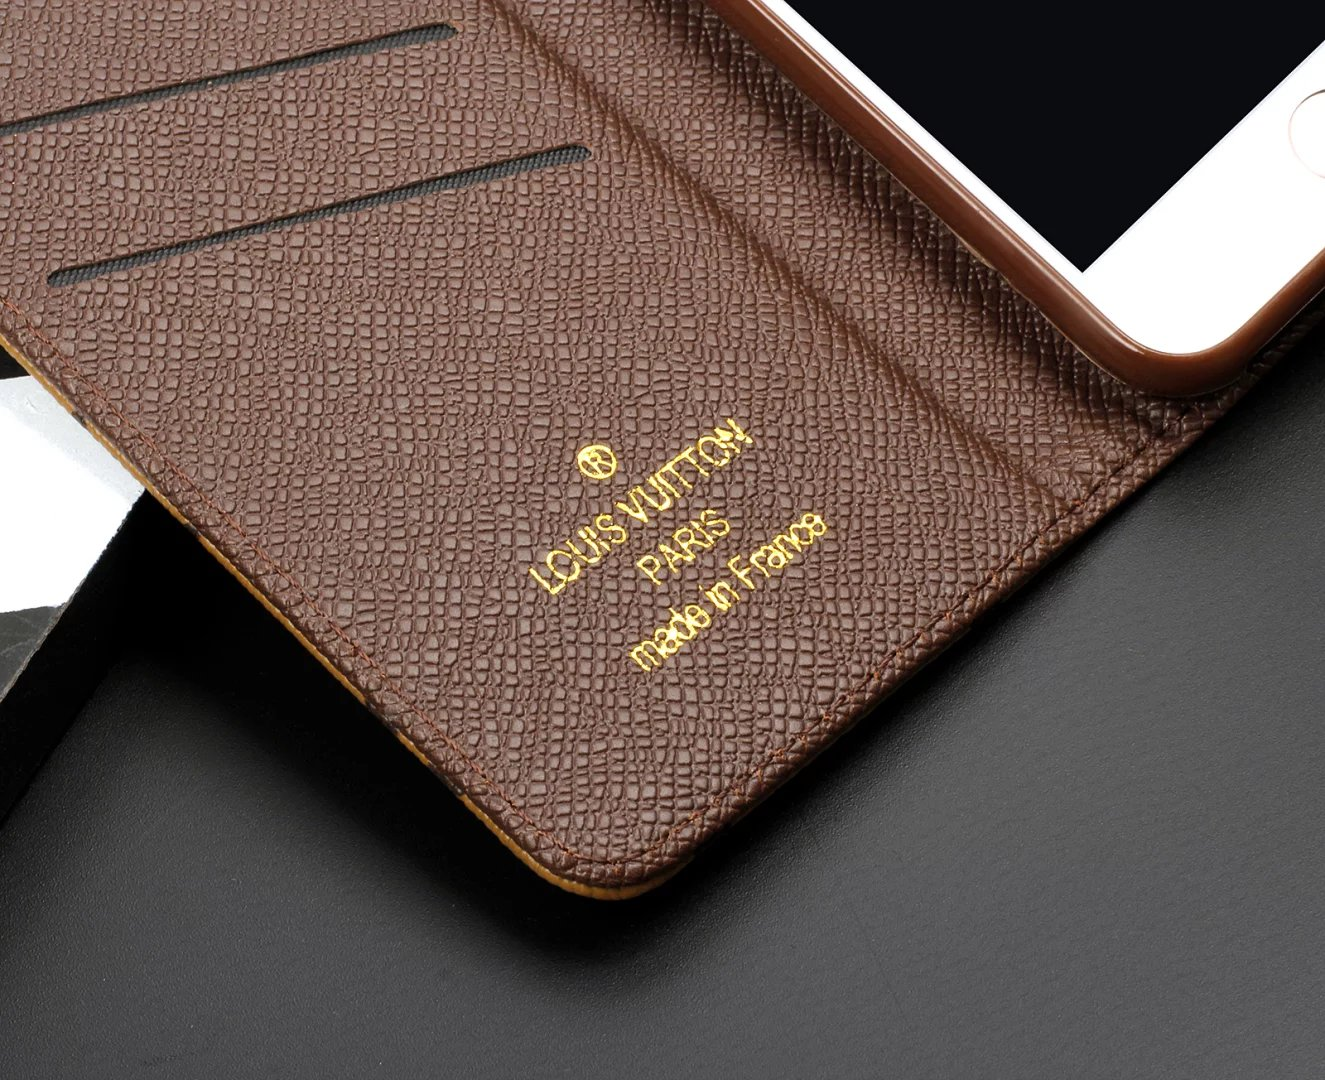 iphone 8 Plusd case design case for iphone 8 Plus Louis Vuitton iphone 8 Plus case iPhone 8 Plus full cover case customised phone cases apple iPhone 8 Plus cases and covers device cover best mobile phone cover mophie juice pack for iPhone 8 Plus